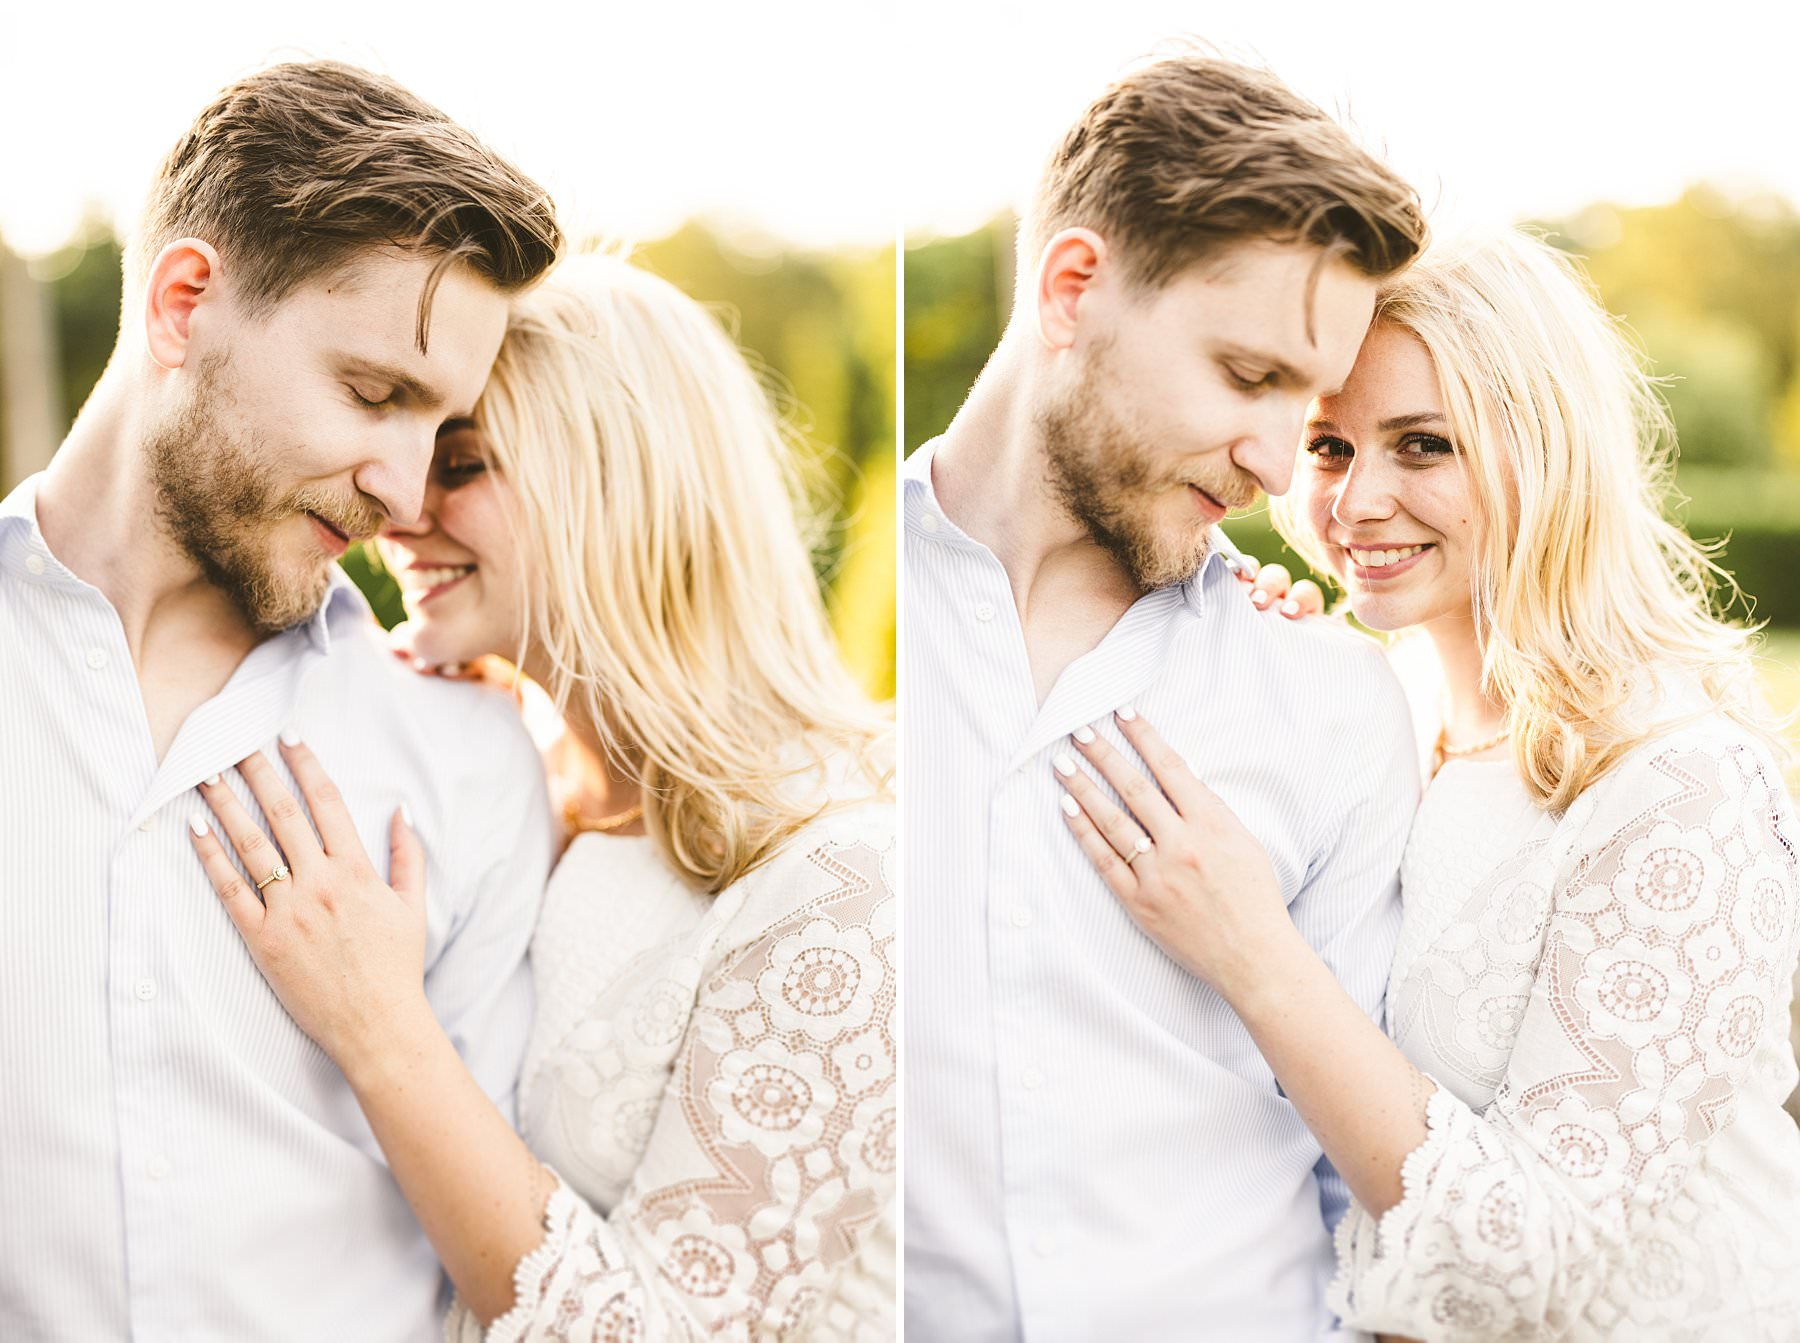 Lovely emotional couple portrait at Poggio Tre Lune a special venue located in the heart of Tuscany near Florence